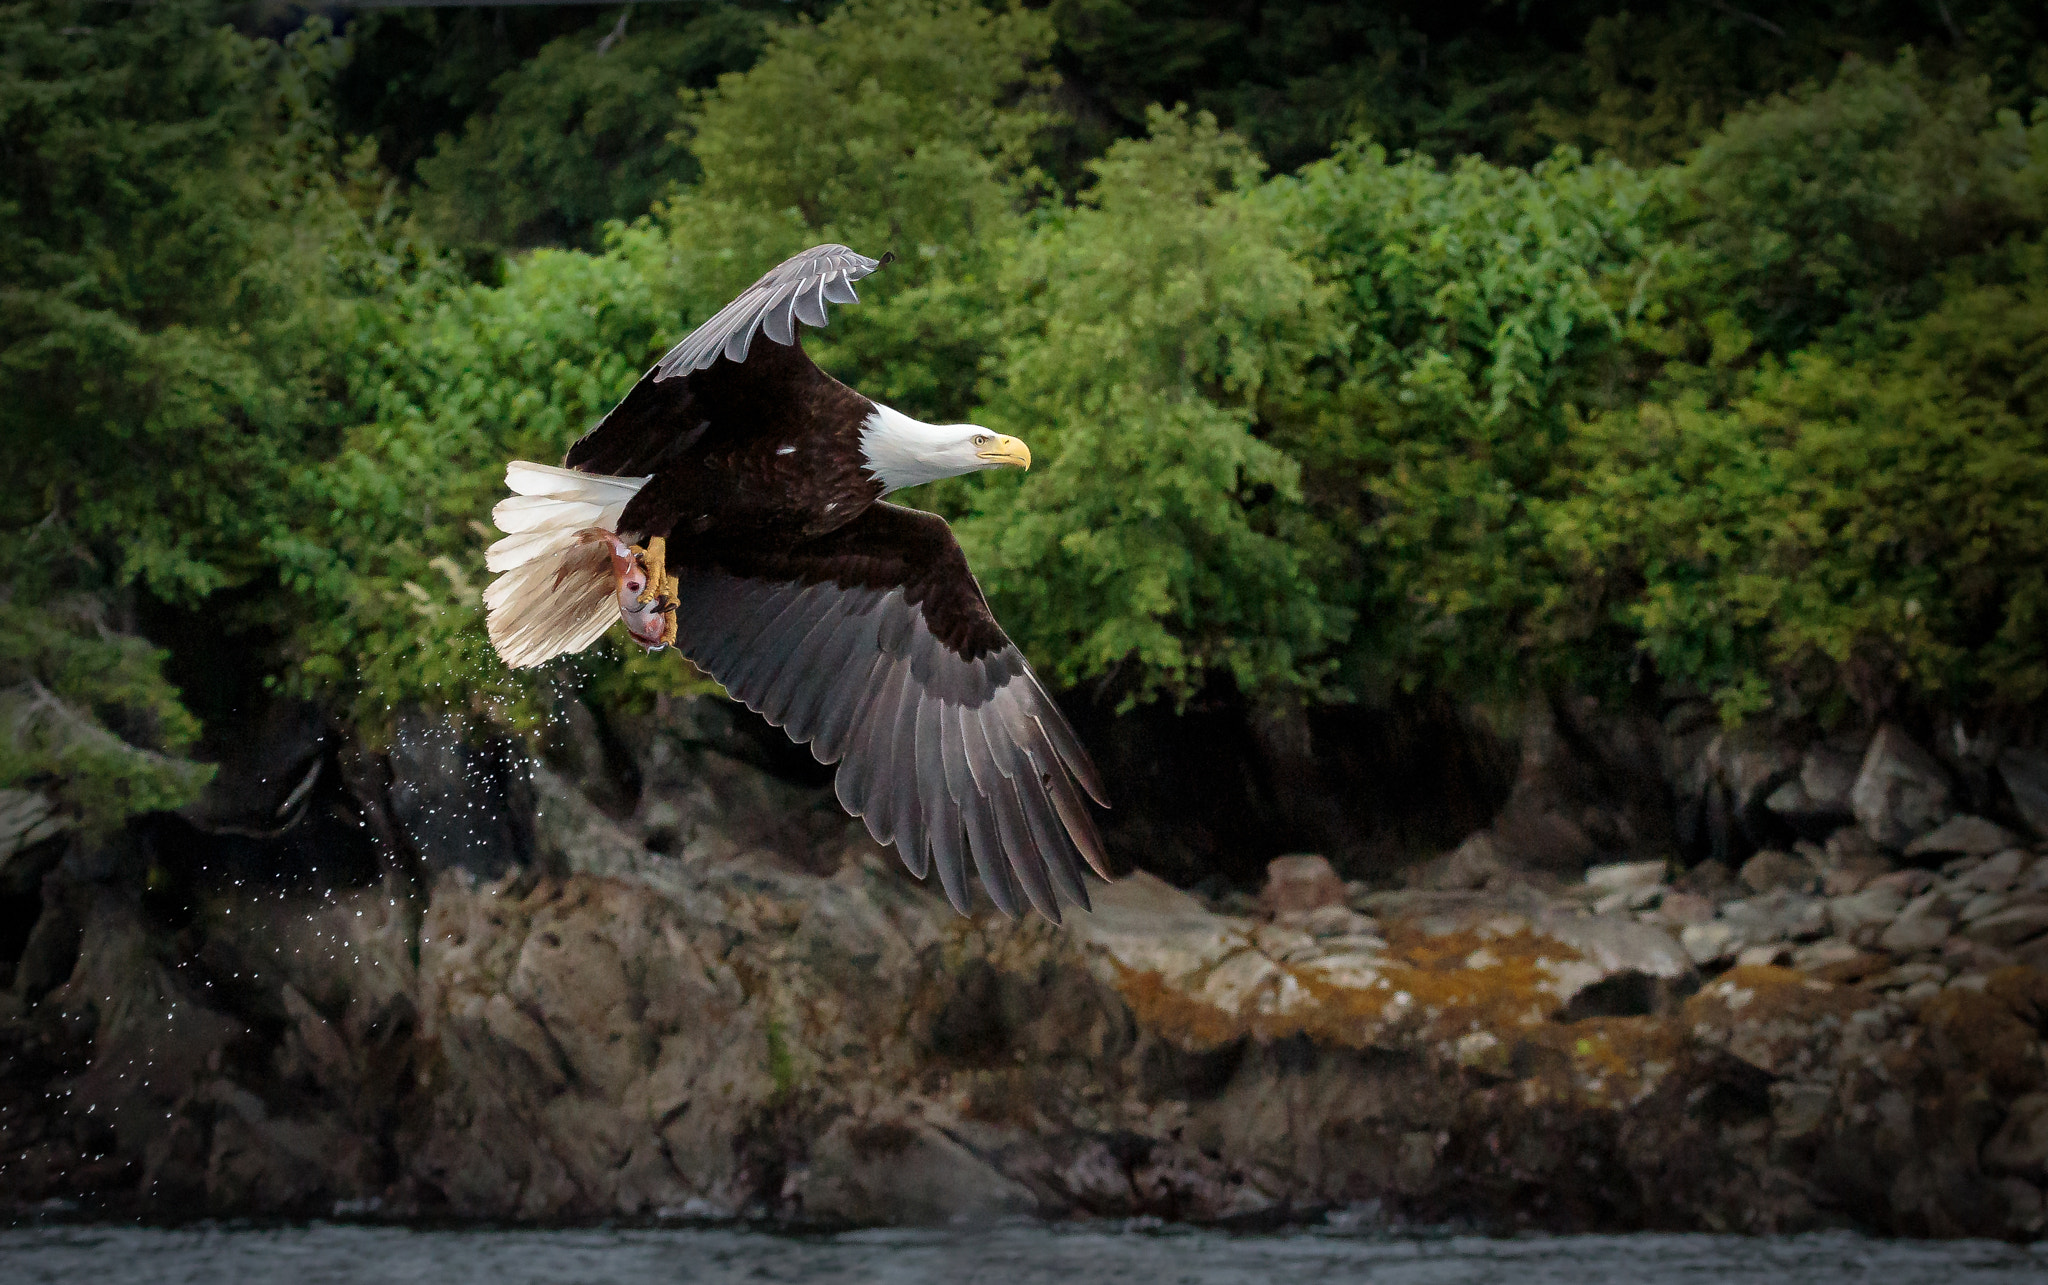 Photograph American Bald Eagle - Dinner Time by Doug Kliewer on 500px